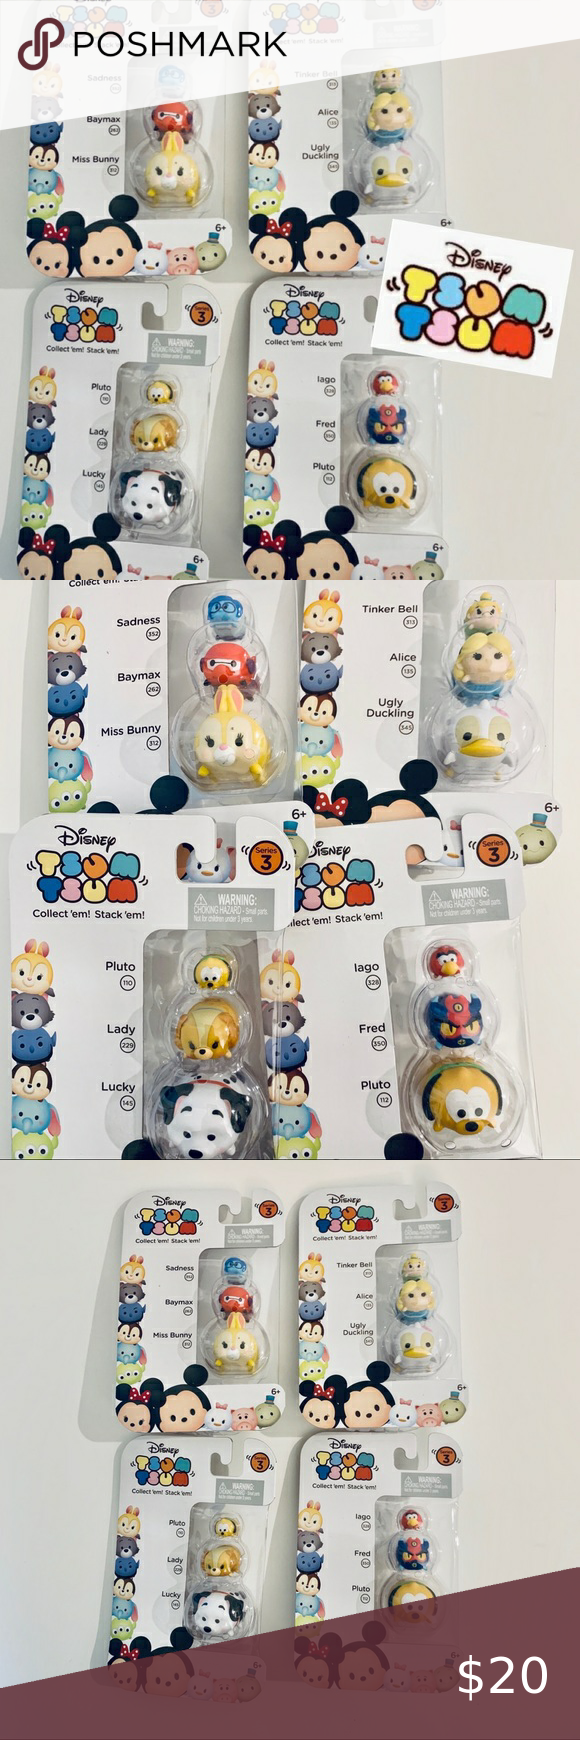 Tsum Tsum Disney Stackable Figures Mix Bundle Tsum Tsum Disney Stackable Figures Mix Bundle   Bundle contains 4 packs with 3 figures each pack  See pictures for different kinds   All season 3  Condition: new in sealed package Includes collector guide  Support a great cause to empower vulnerable youth in our community. Fitrah.org  Bin C3 #0023 Disney Other